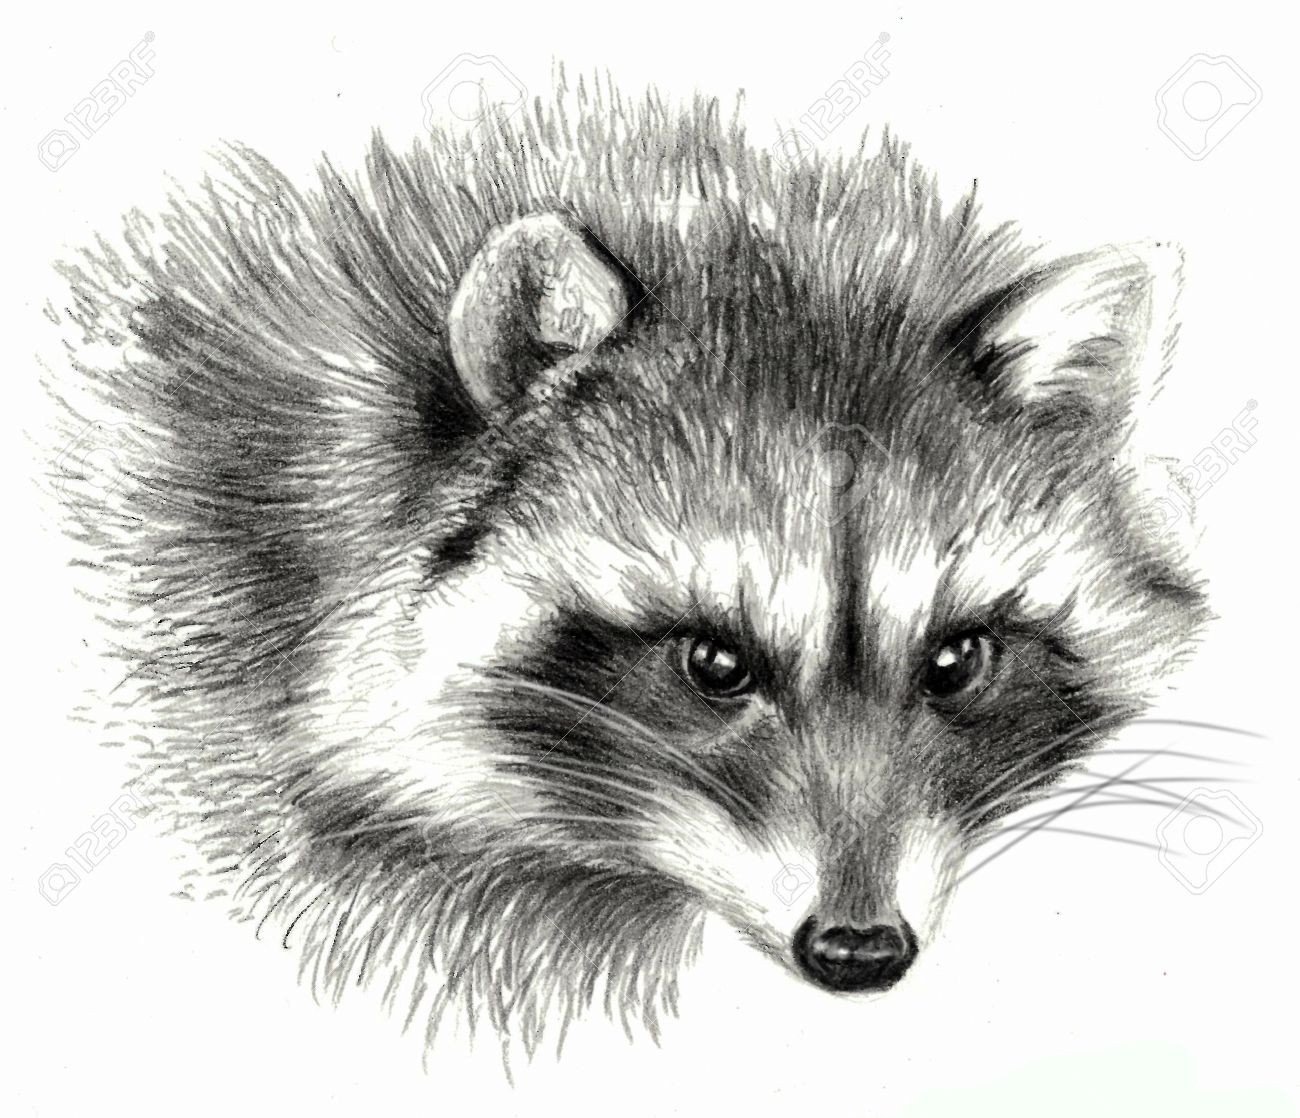 Sketch raccoon portrait on white background detailed pencil drawing stock photo 52914771